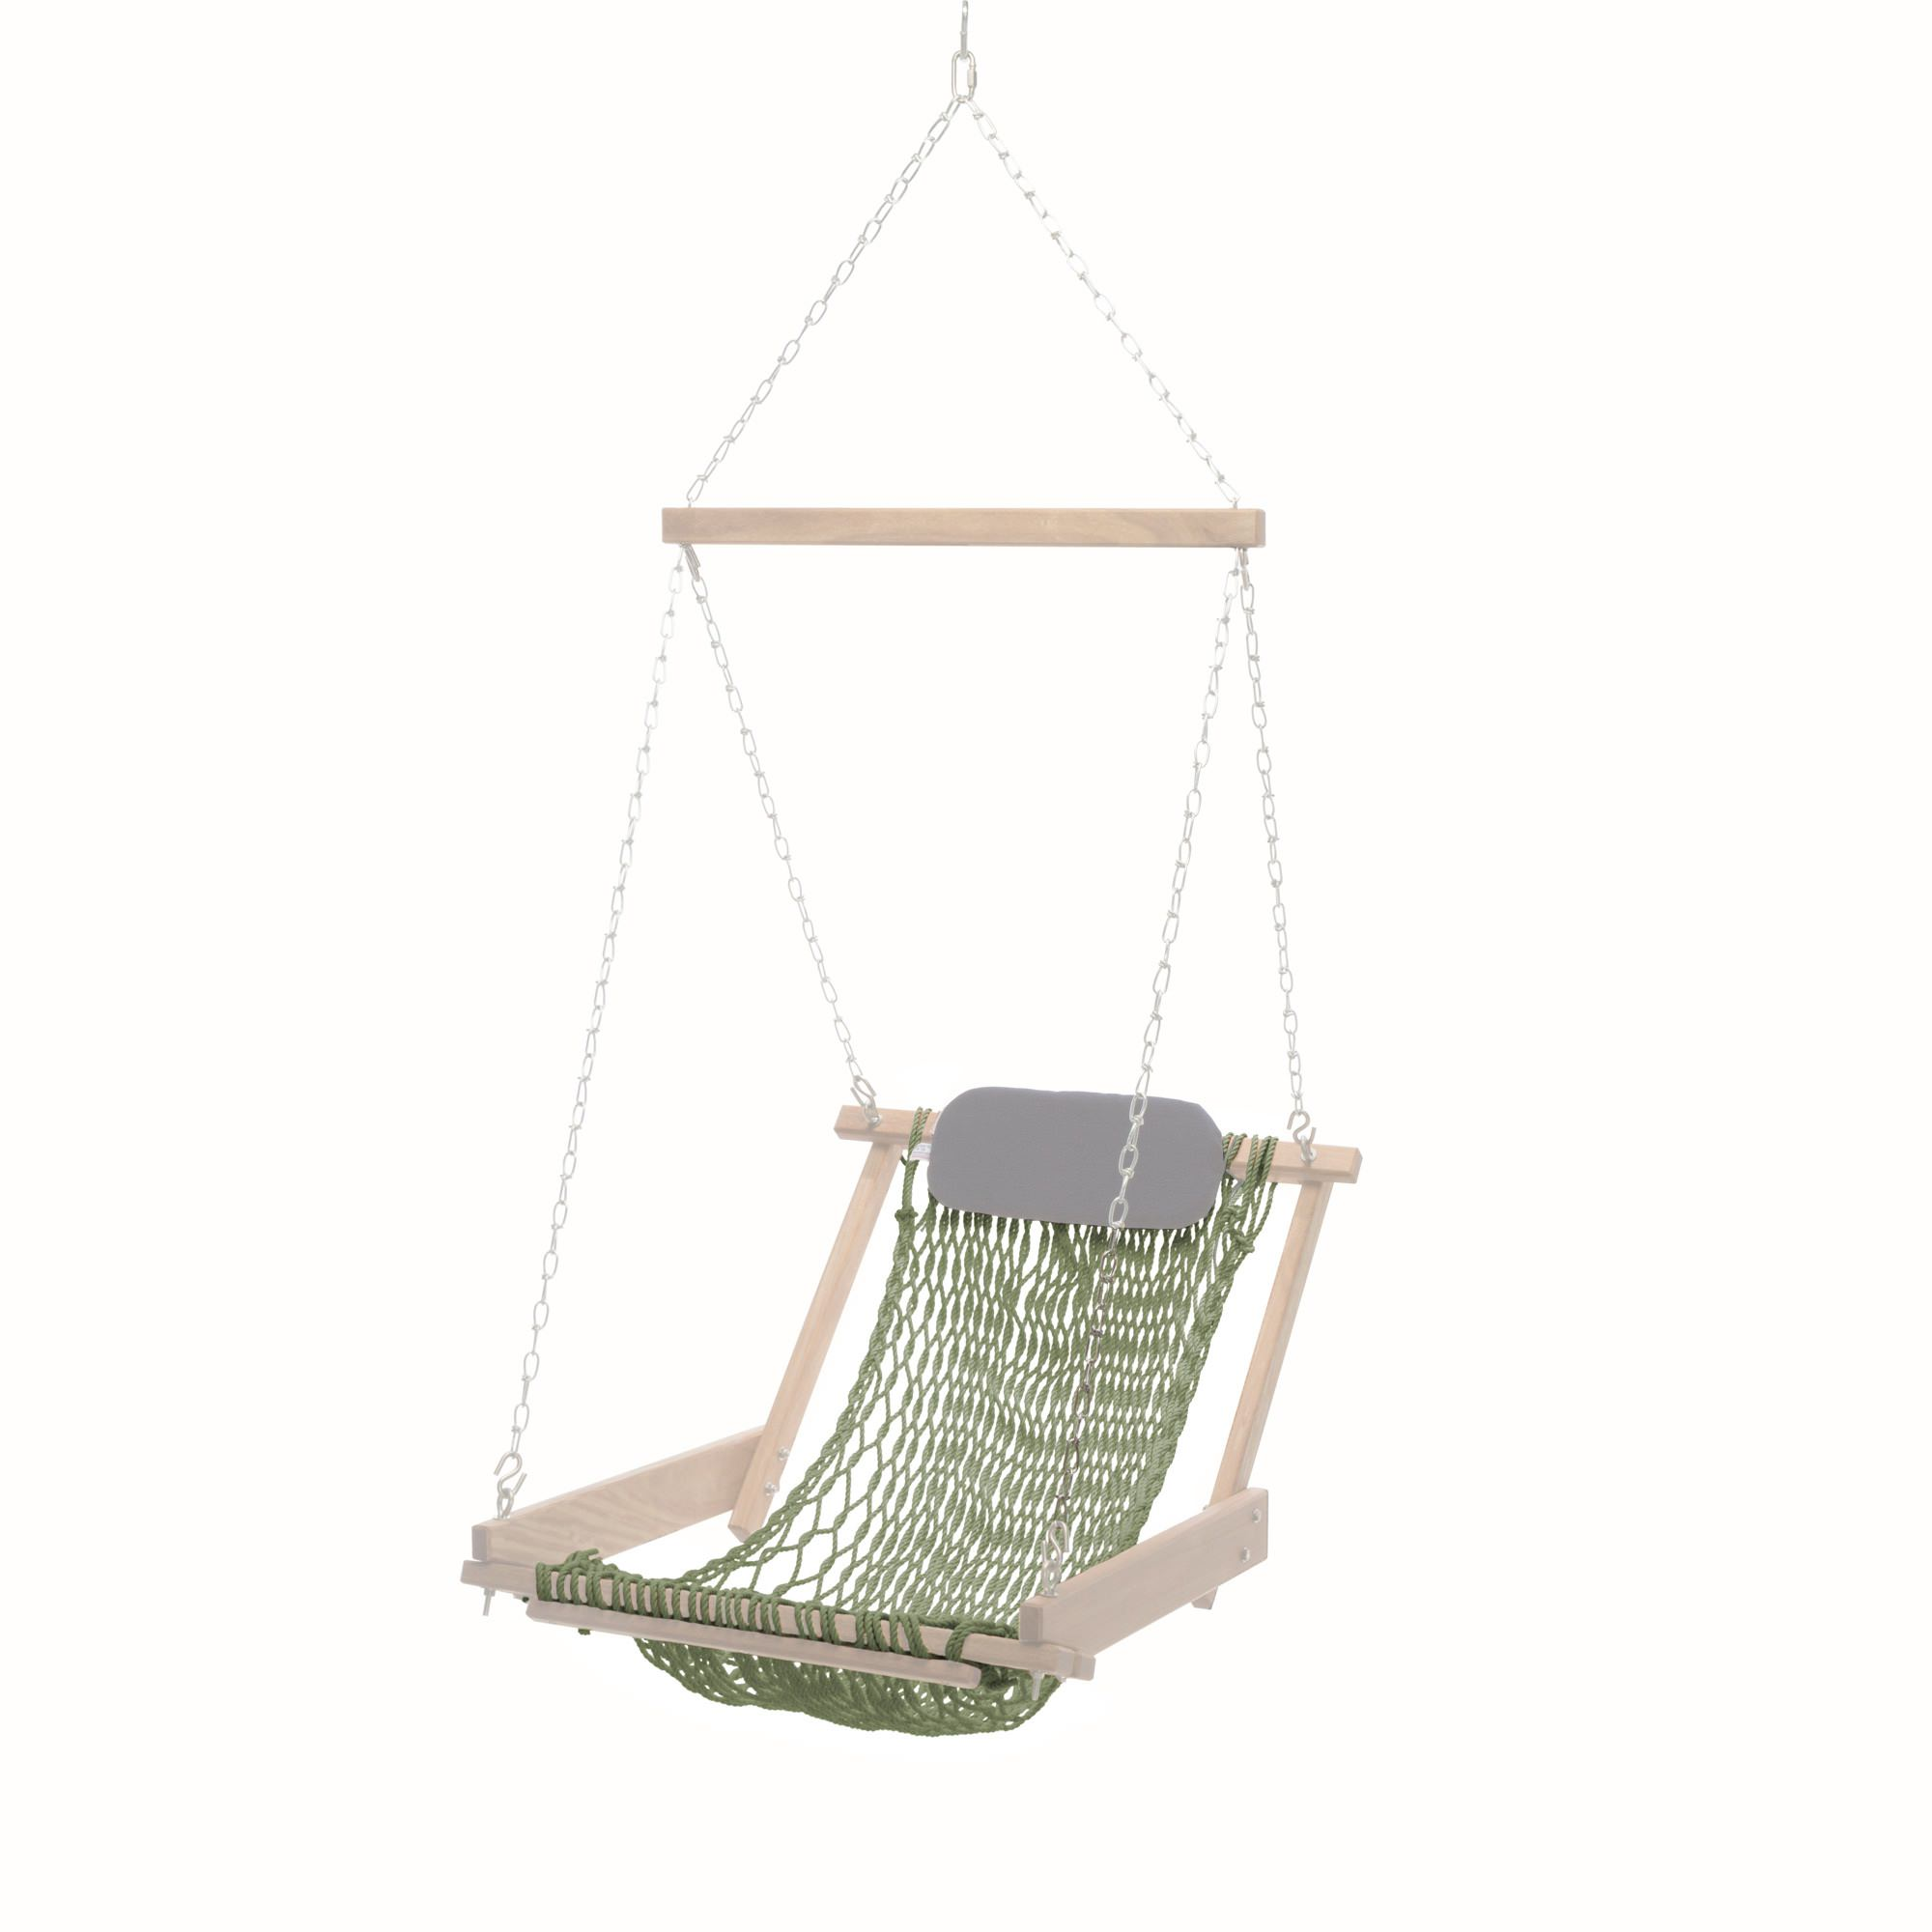 ... Cumaru Single Chair/Swing Rope Seat Replacement ...